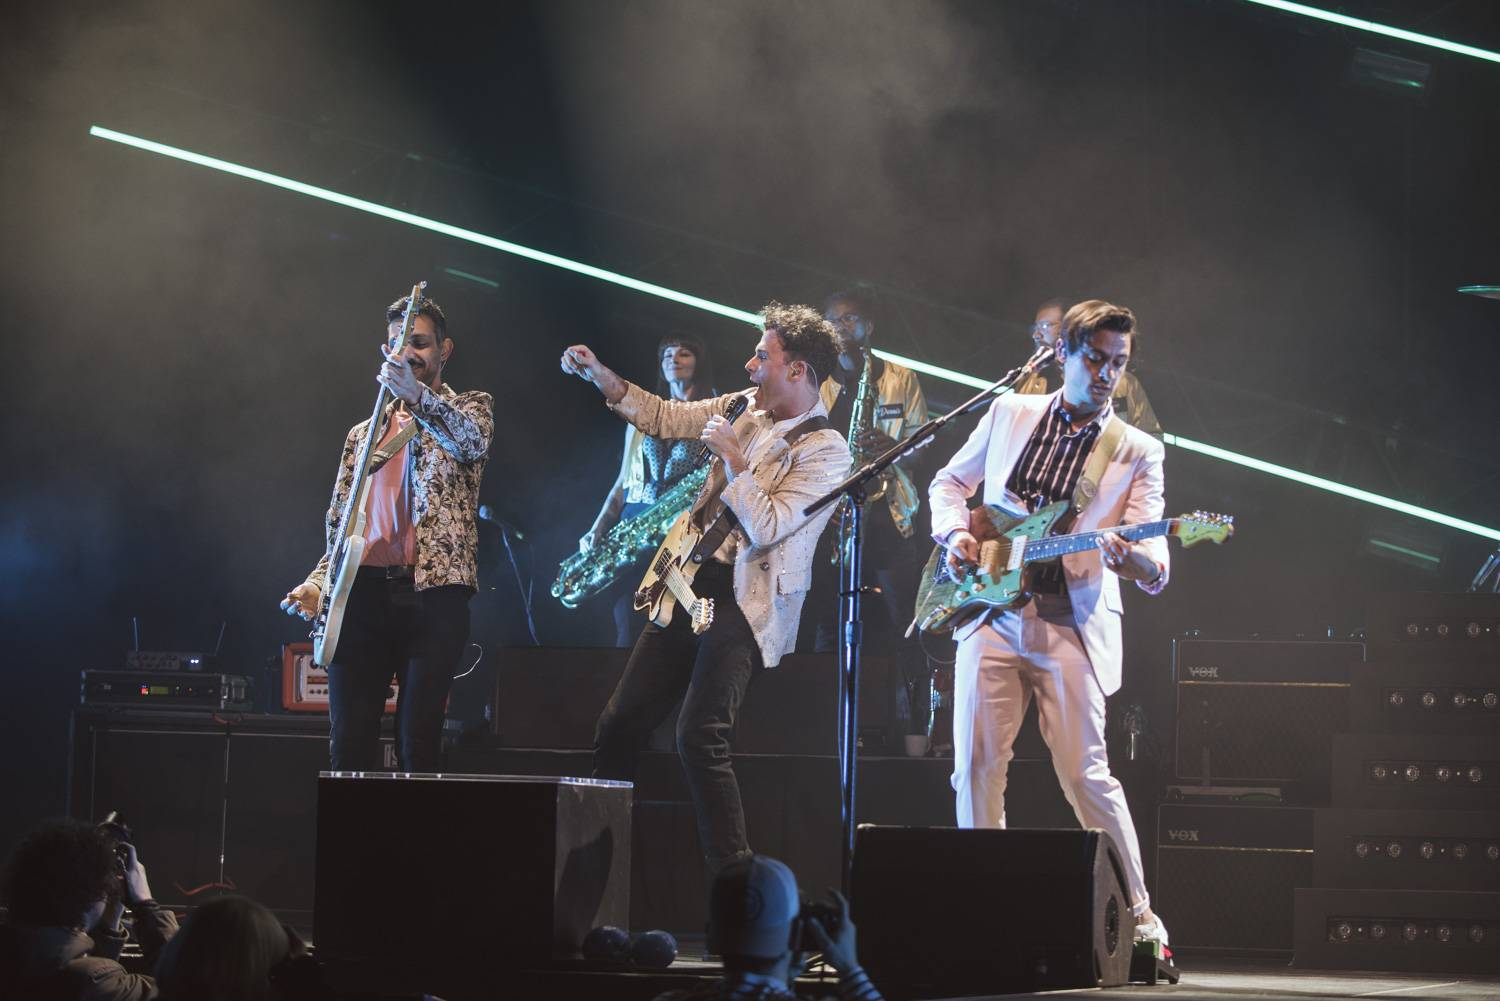 Arkells at the Pacific Coliseum, Vancouver, Feb 2 2019. Pavel Boiko photo.